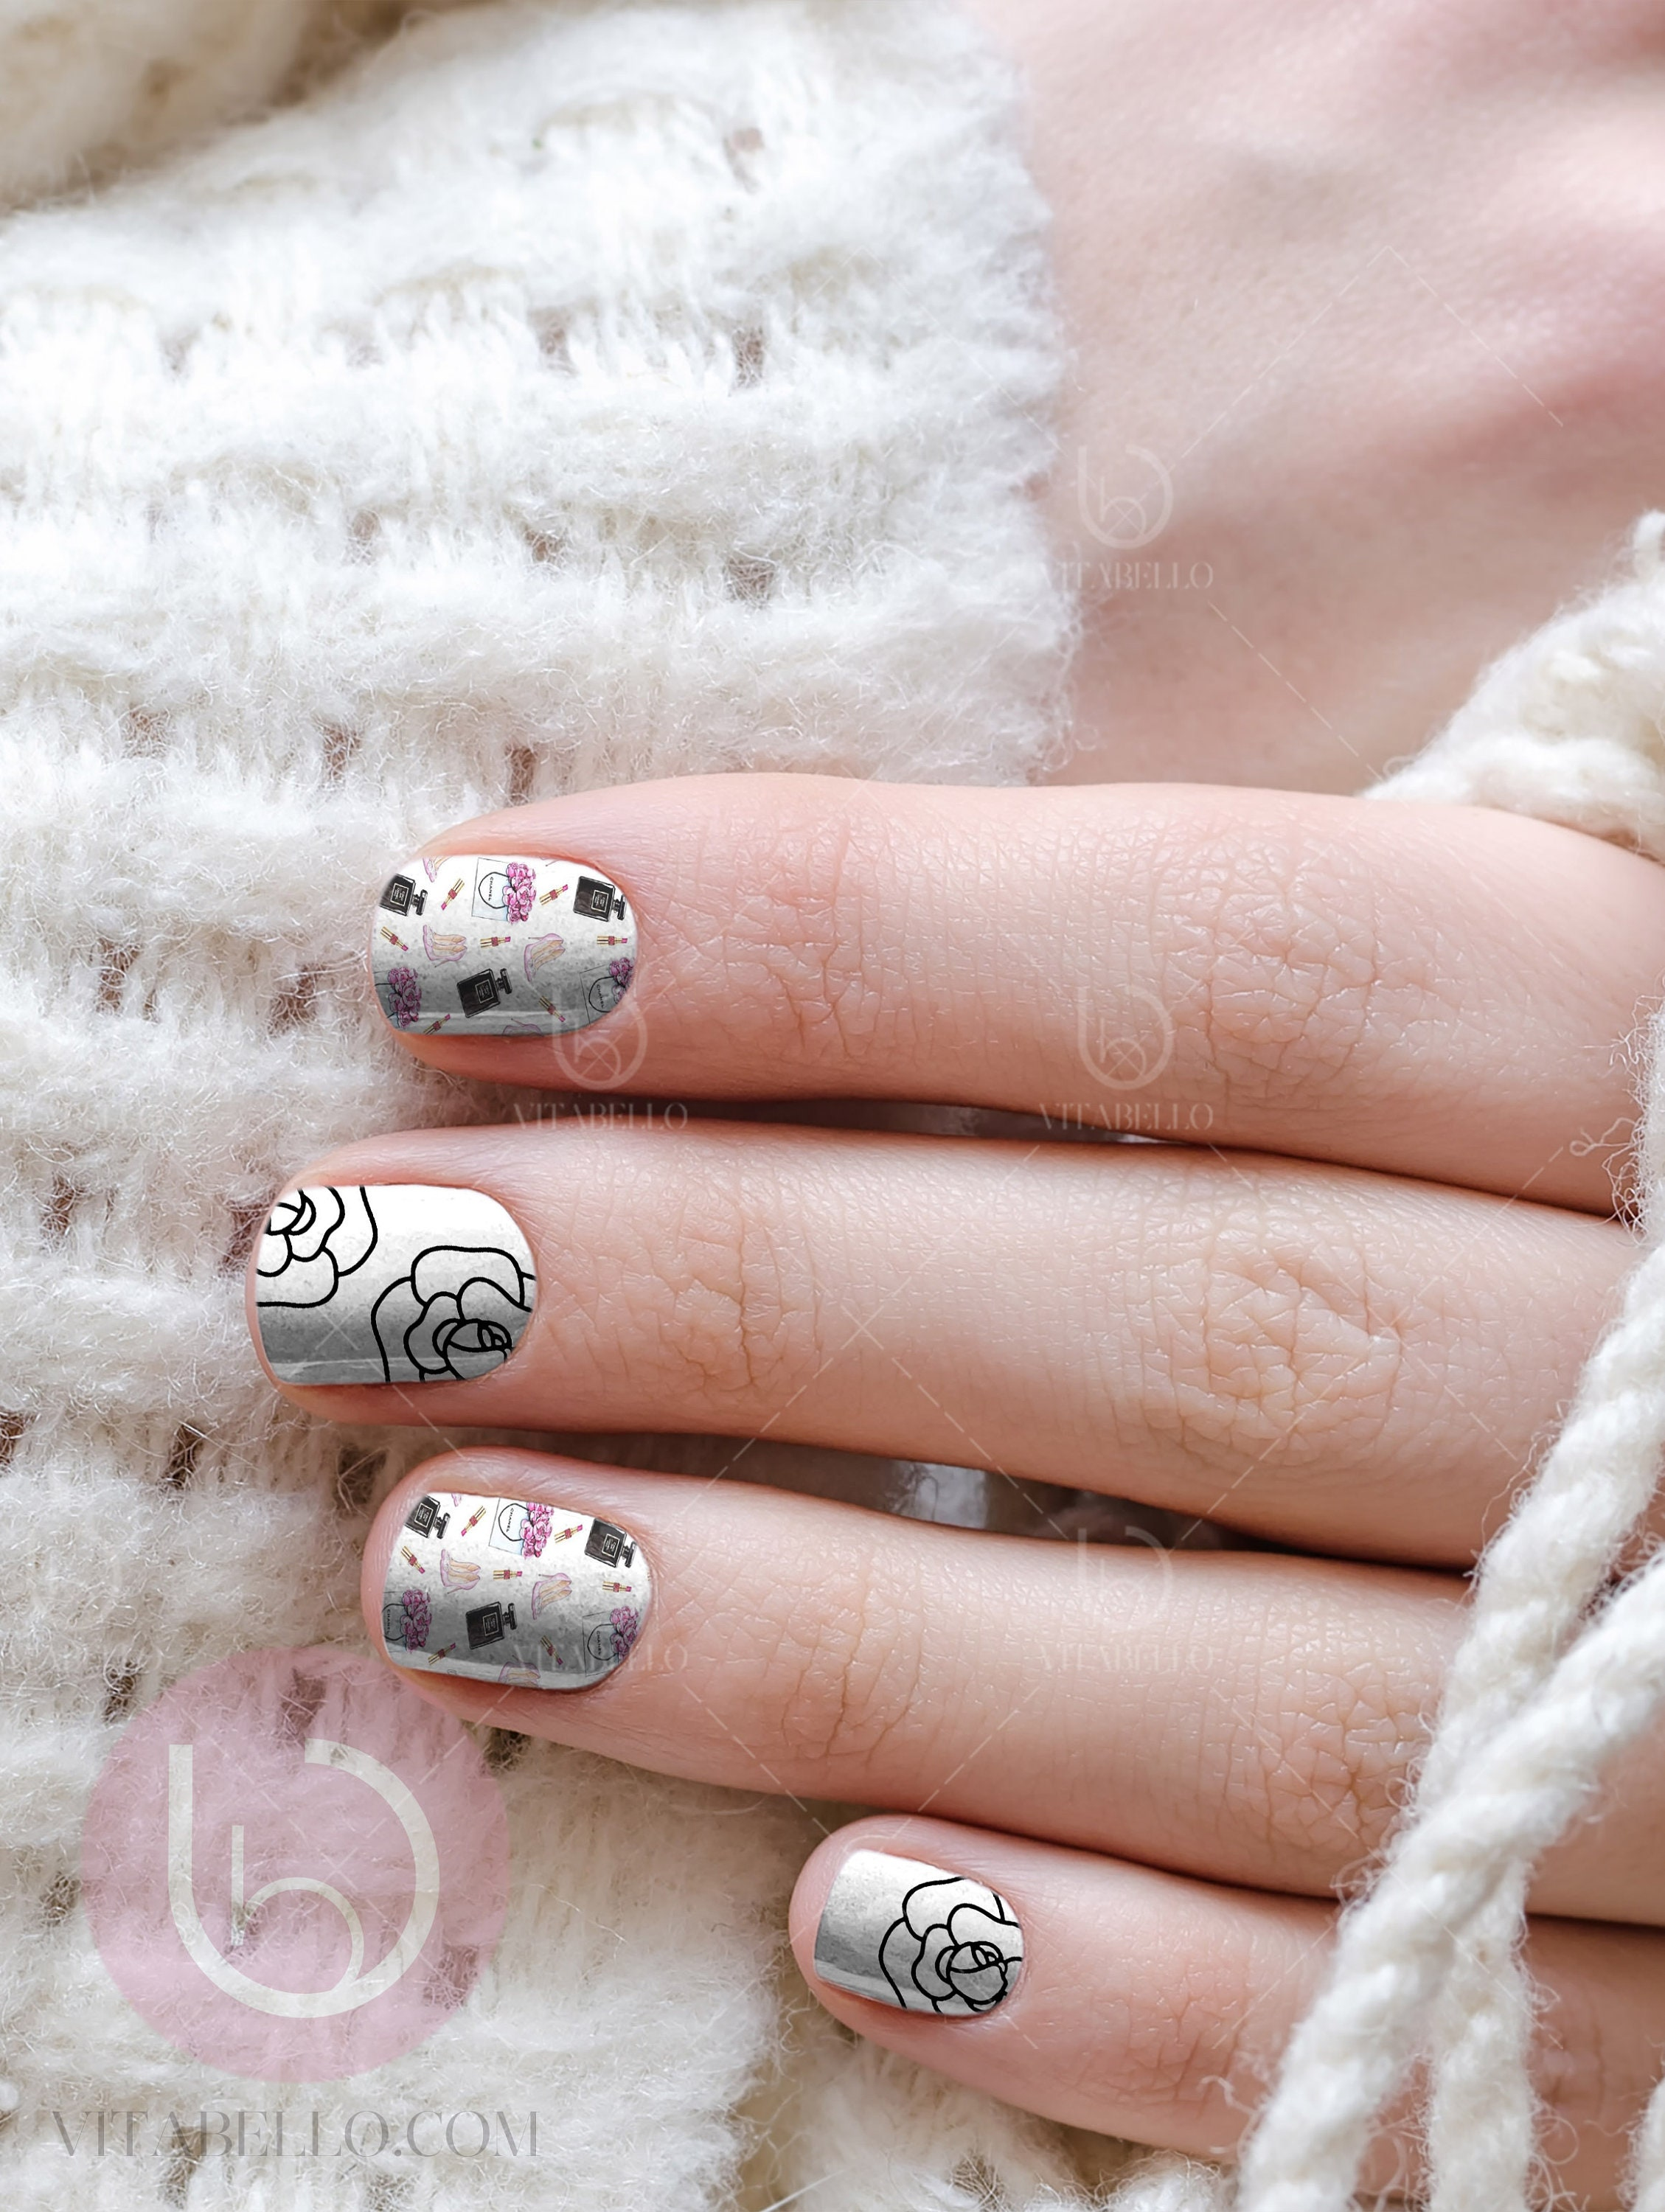 Co co water decal nail design nails press on nail decal nail 499 prinsesfo Image collections